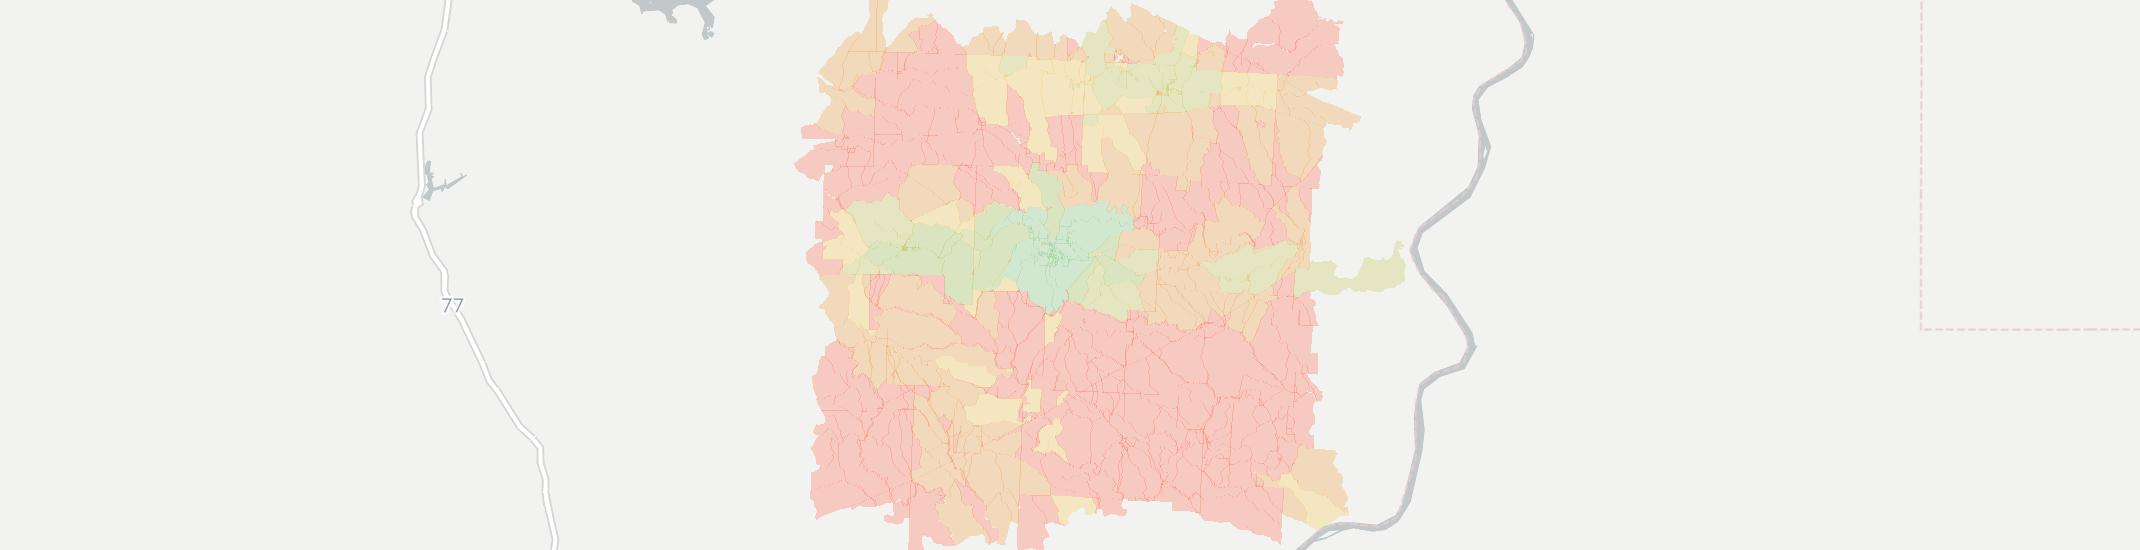 Woodsfield Ohio Map.Woodsfield Has 9 Internet Service Providers Up To 25 Mbps